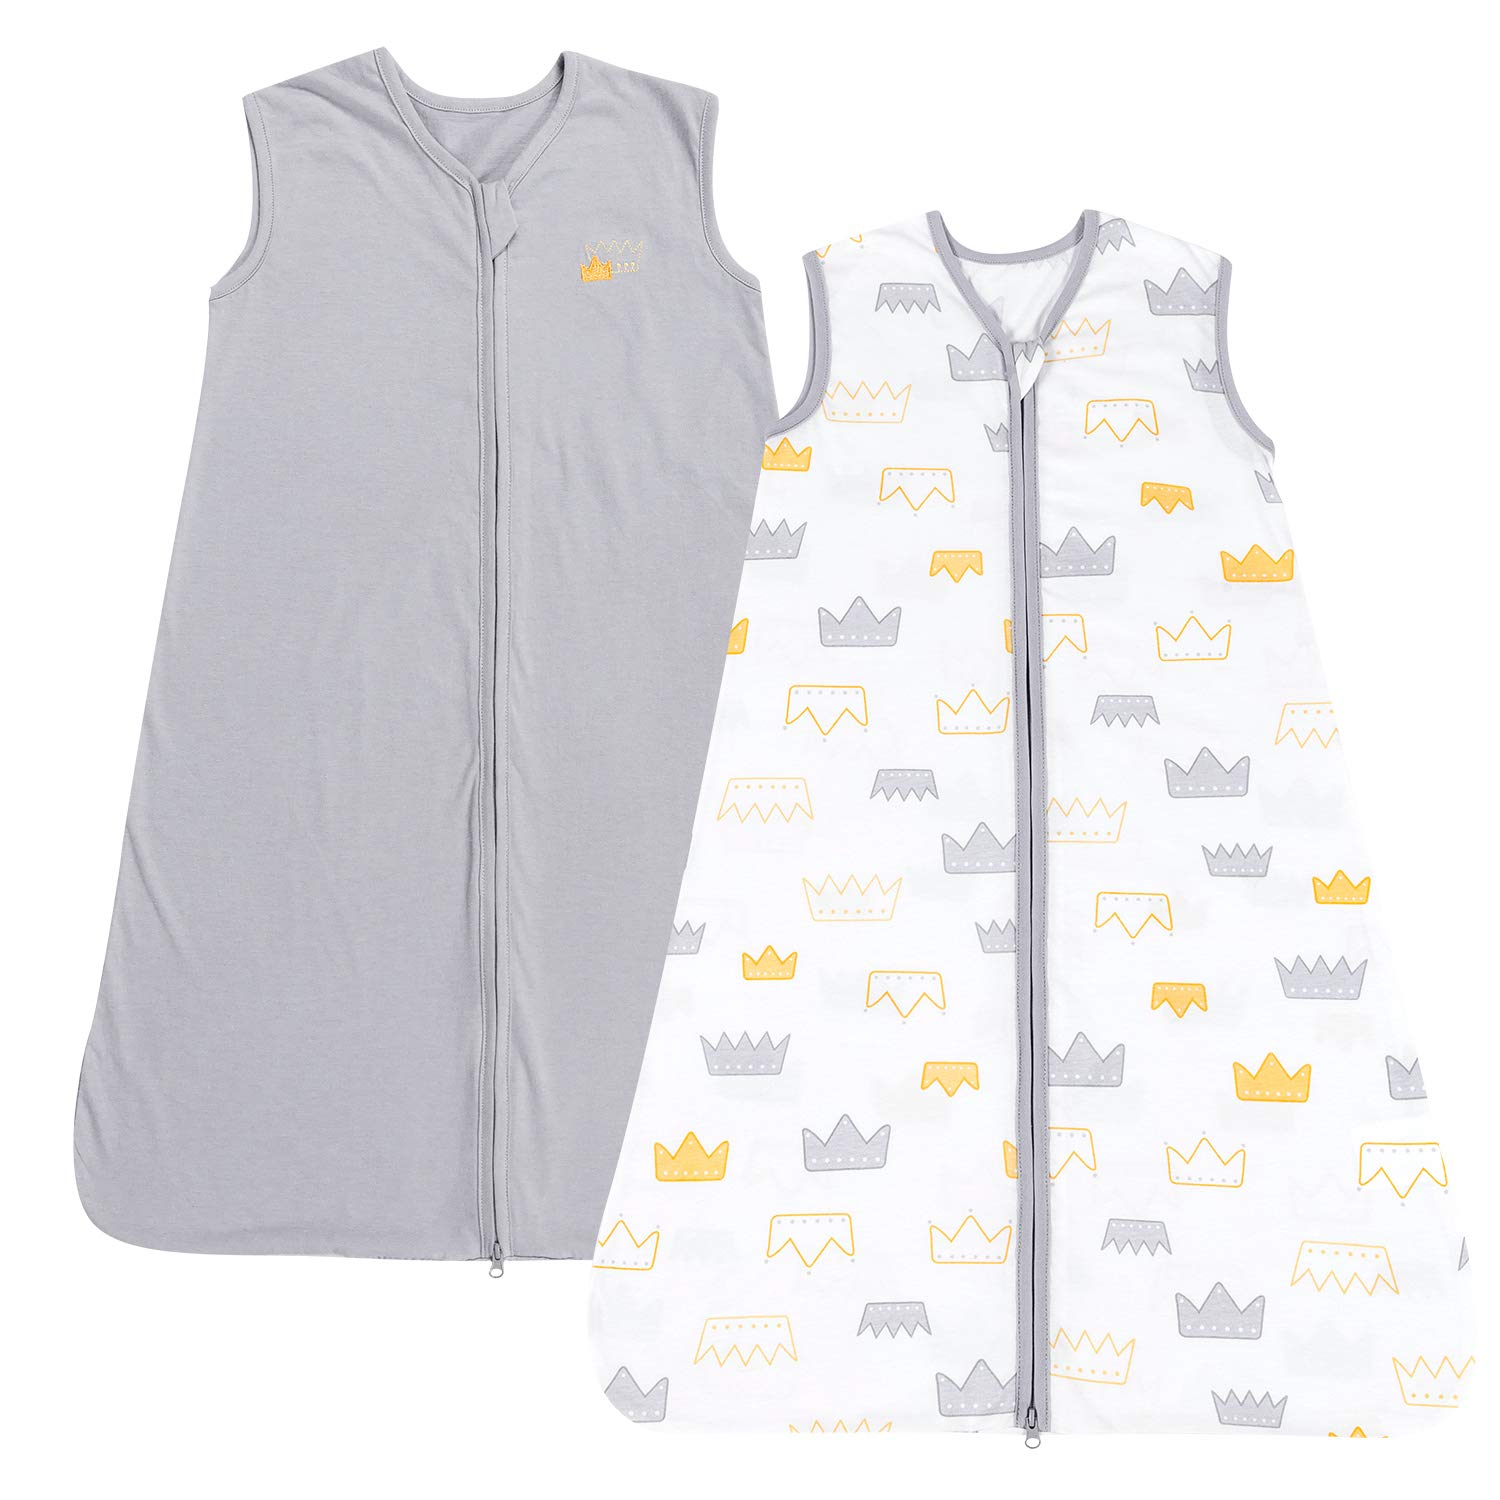 TILLYOU Cotton 2-Way Zipper Sleep Sack